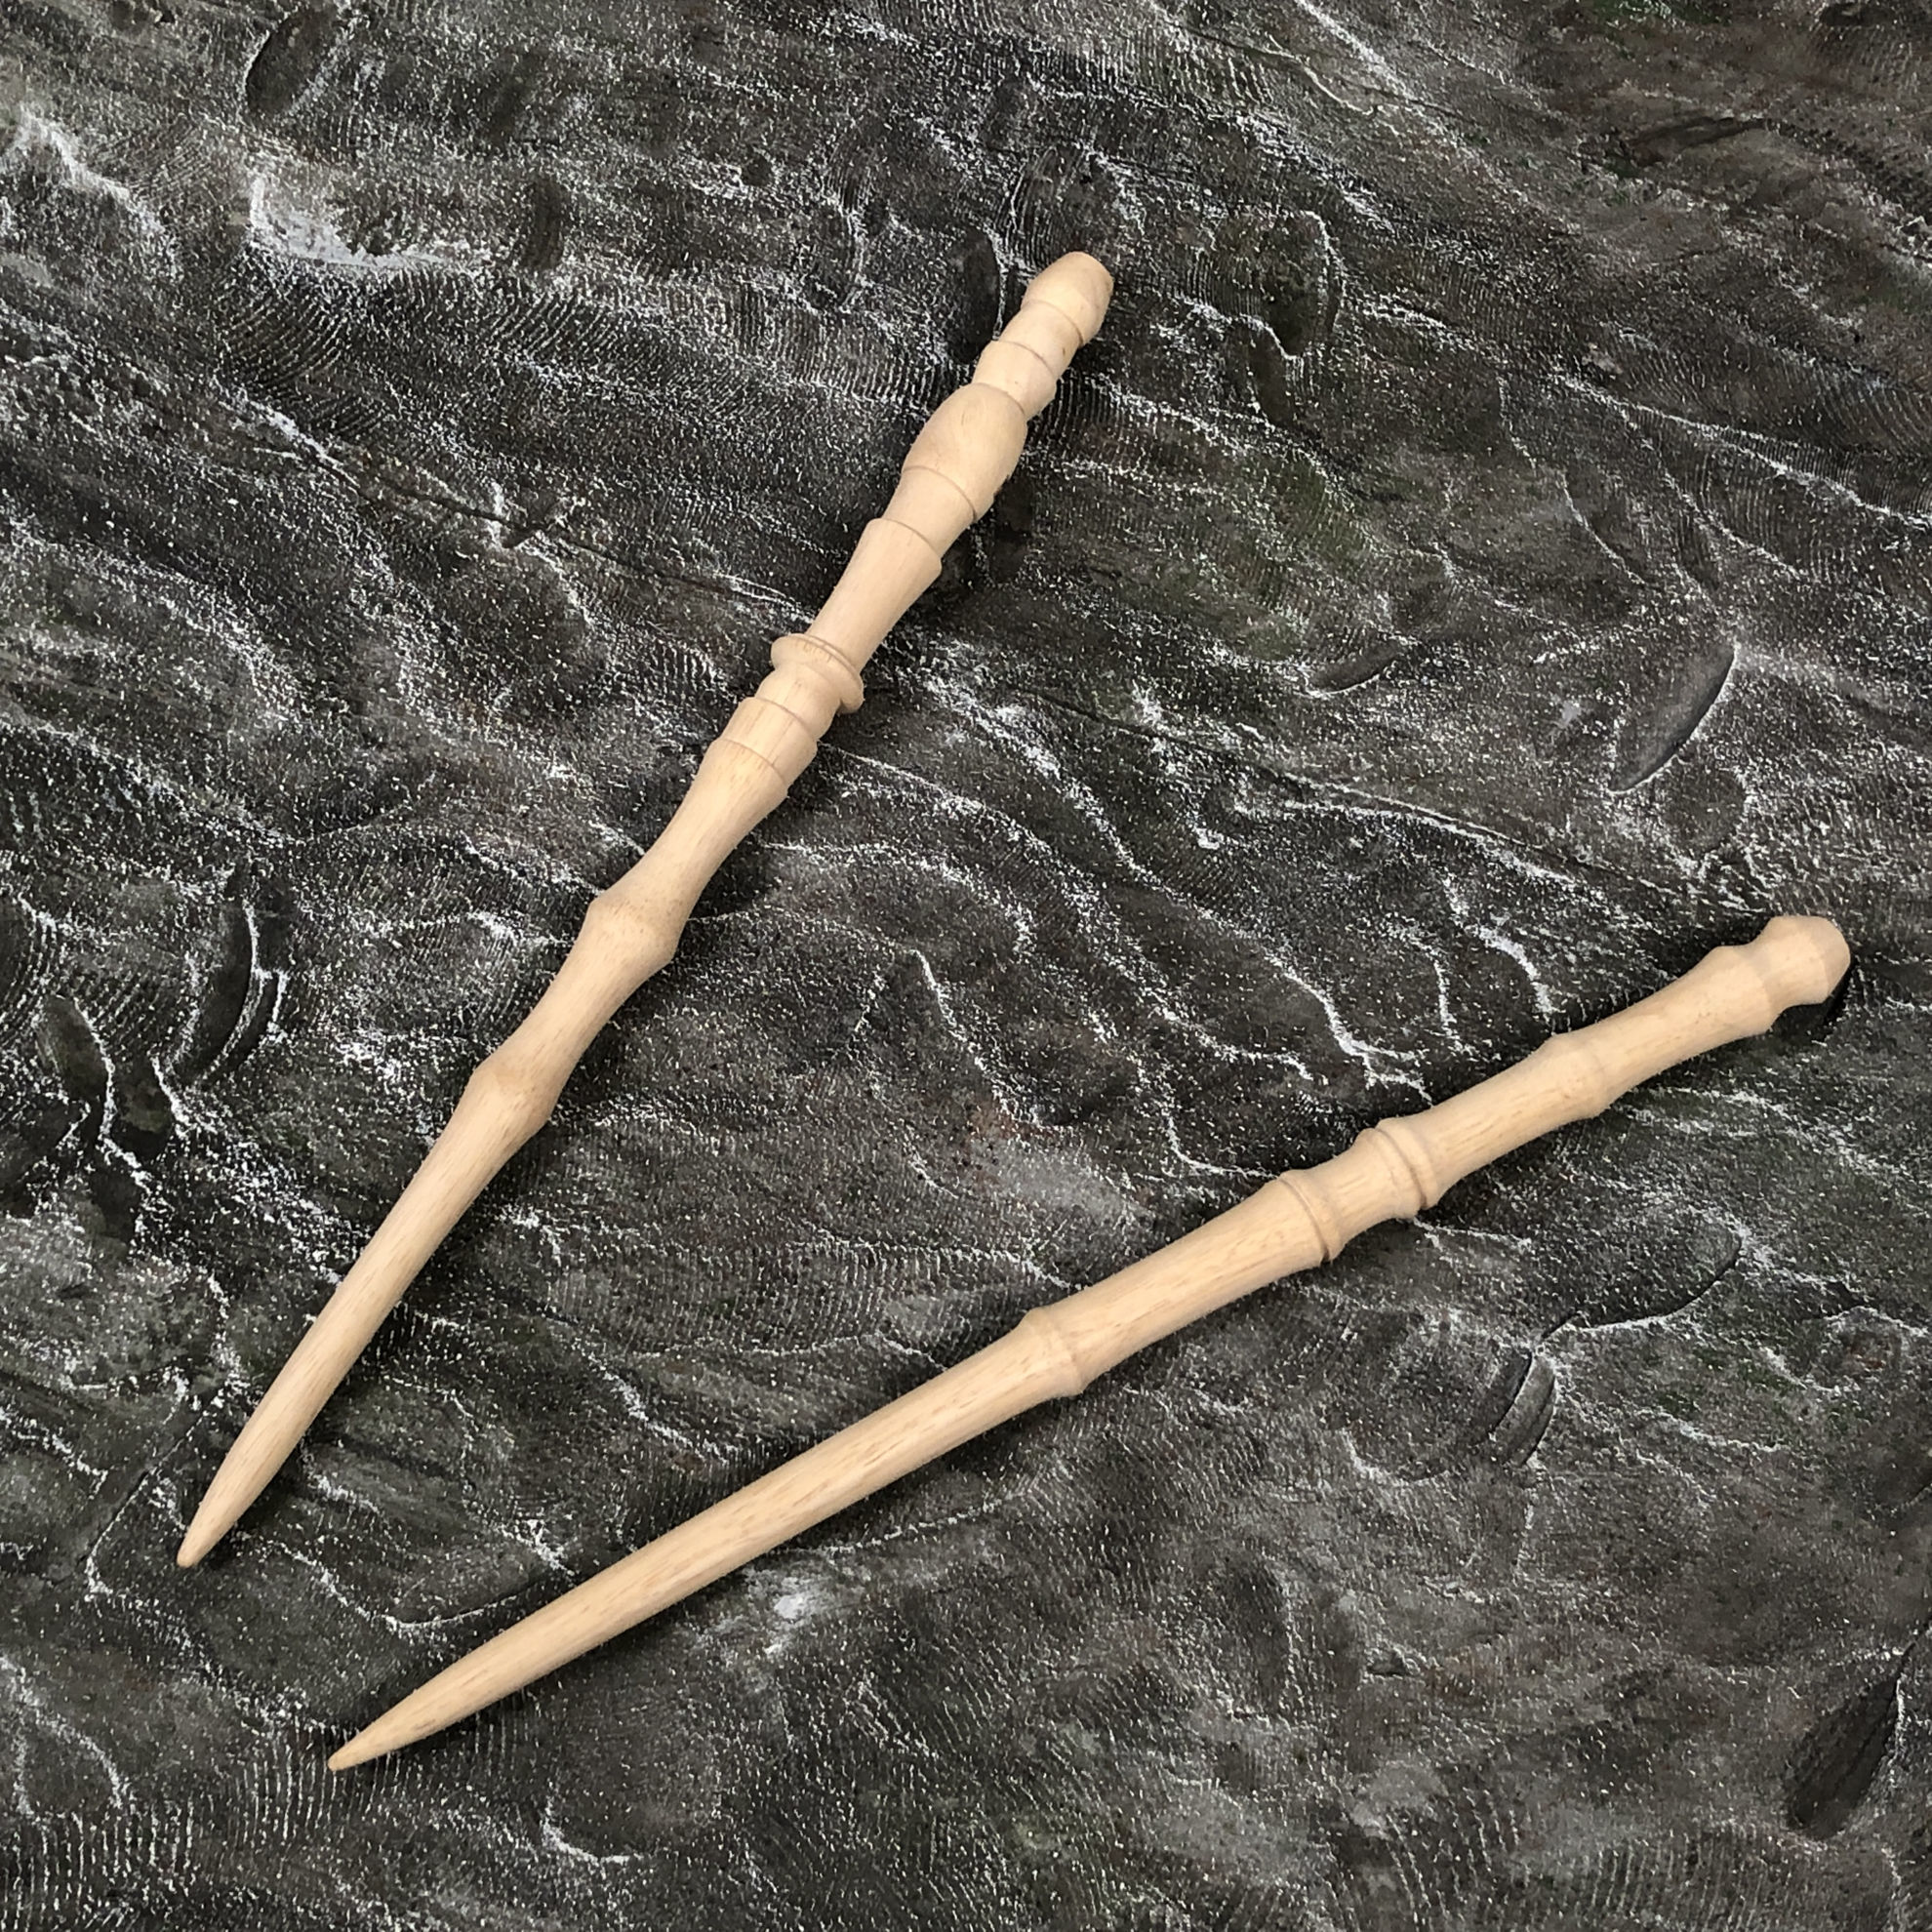 Set of 2 Natural Wood Unstained Wizards Magic Wands